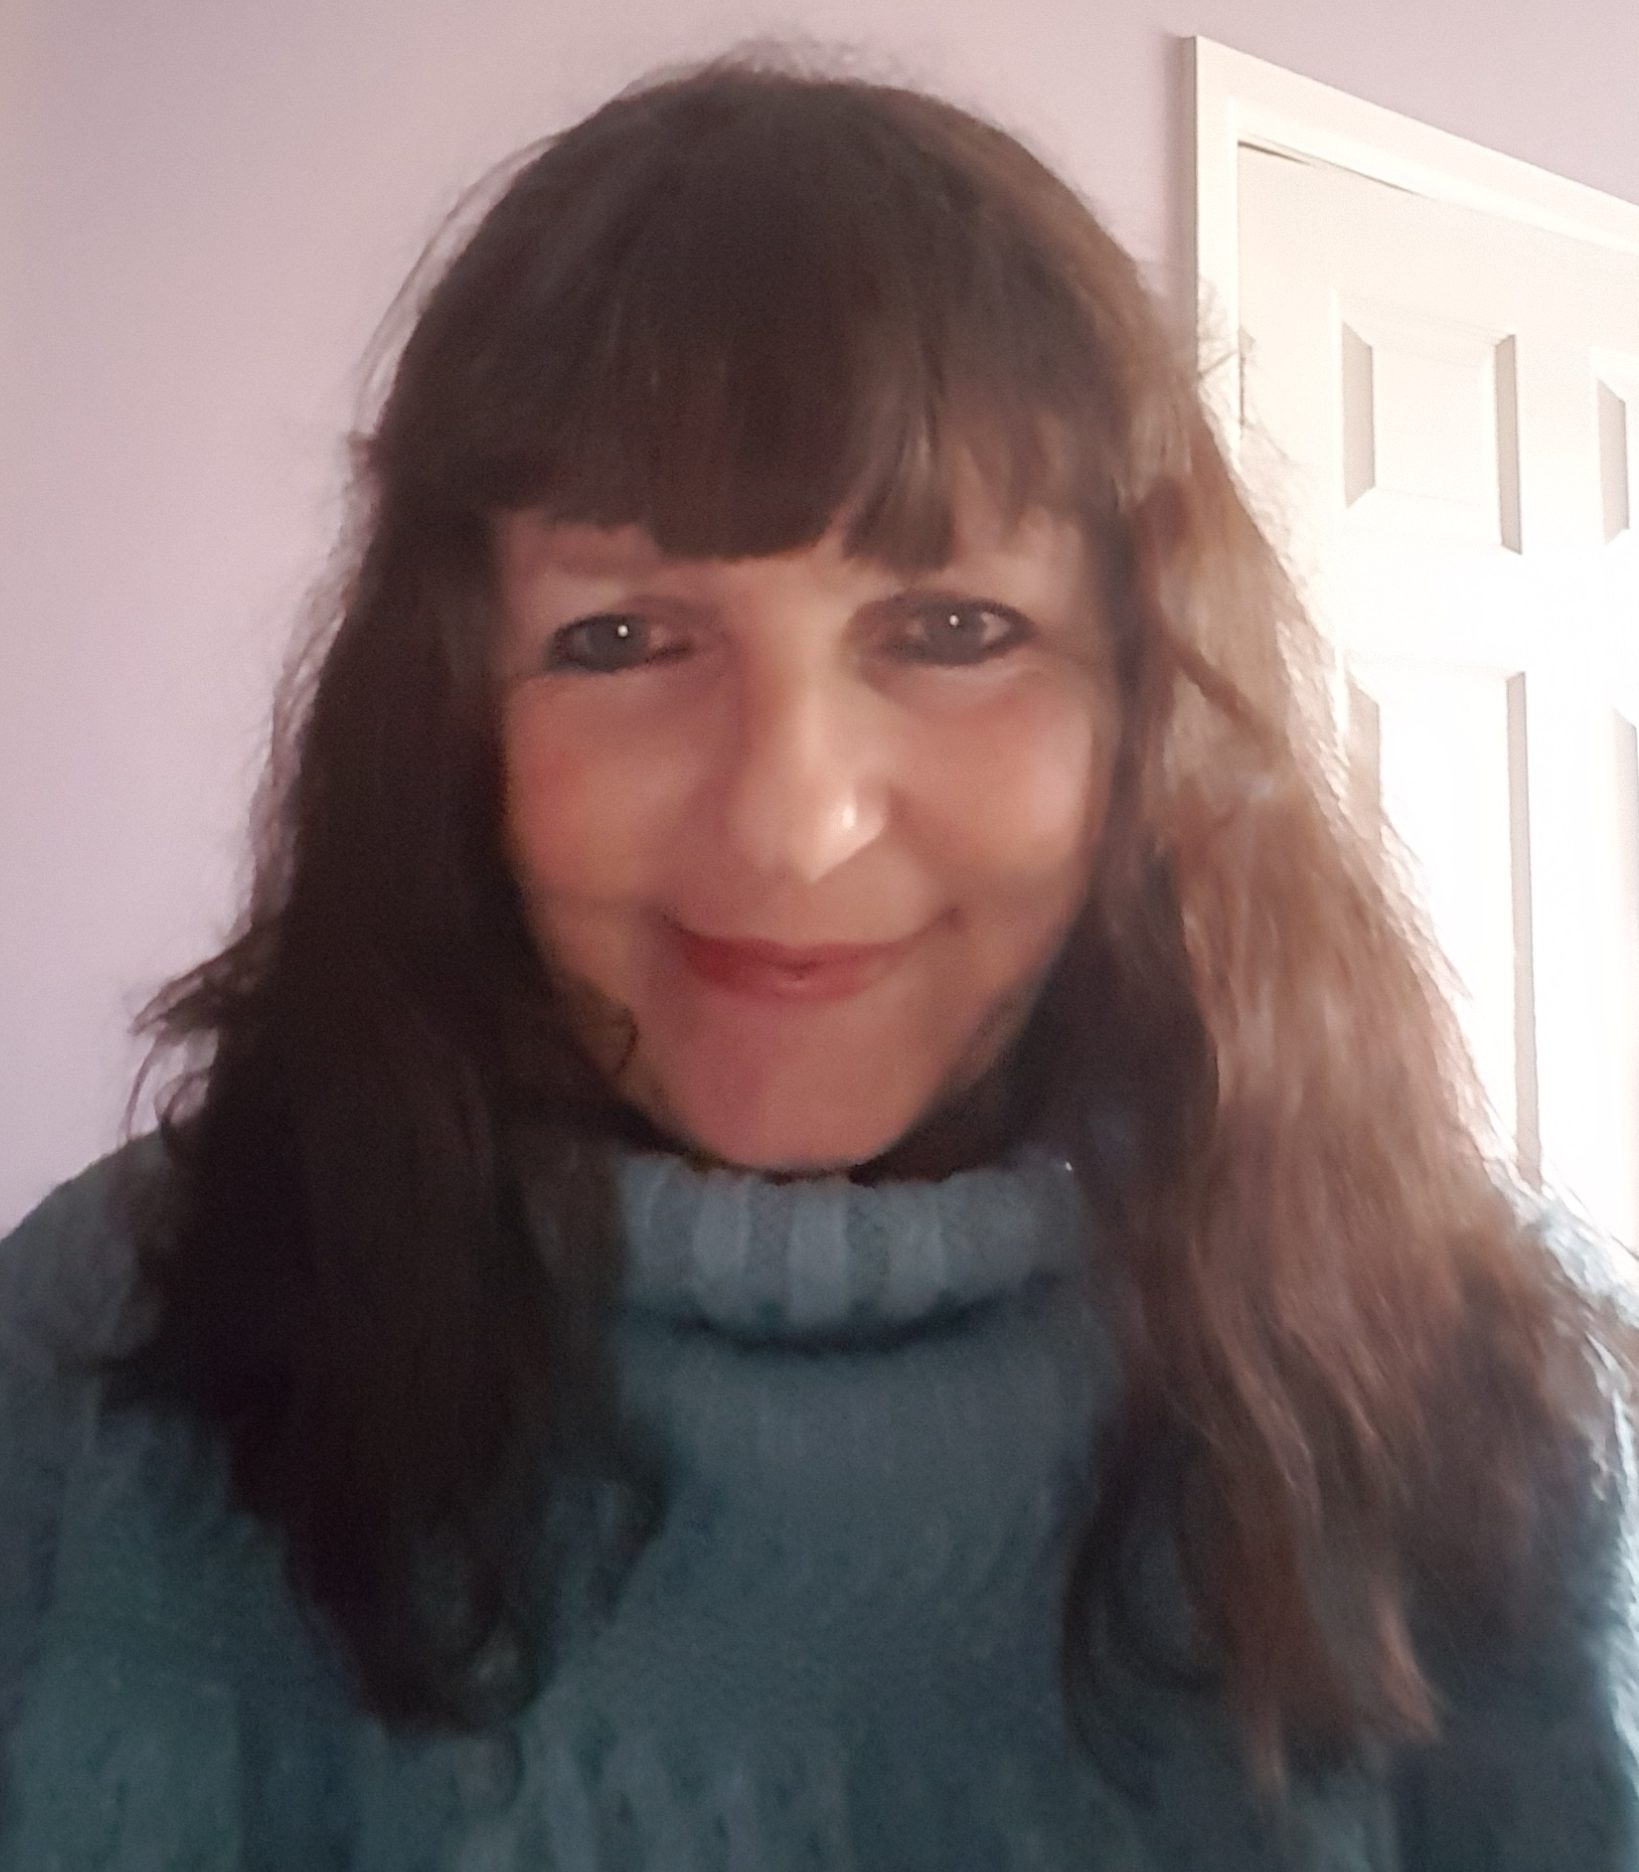 Vicky Tunaley wearing a light blue jumper and smiling.